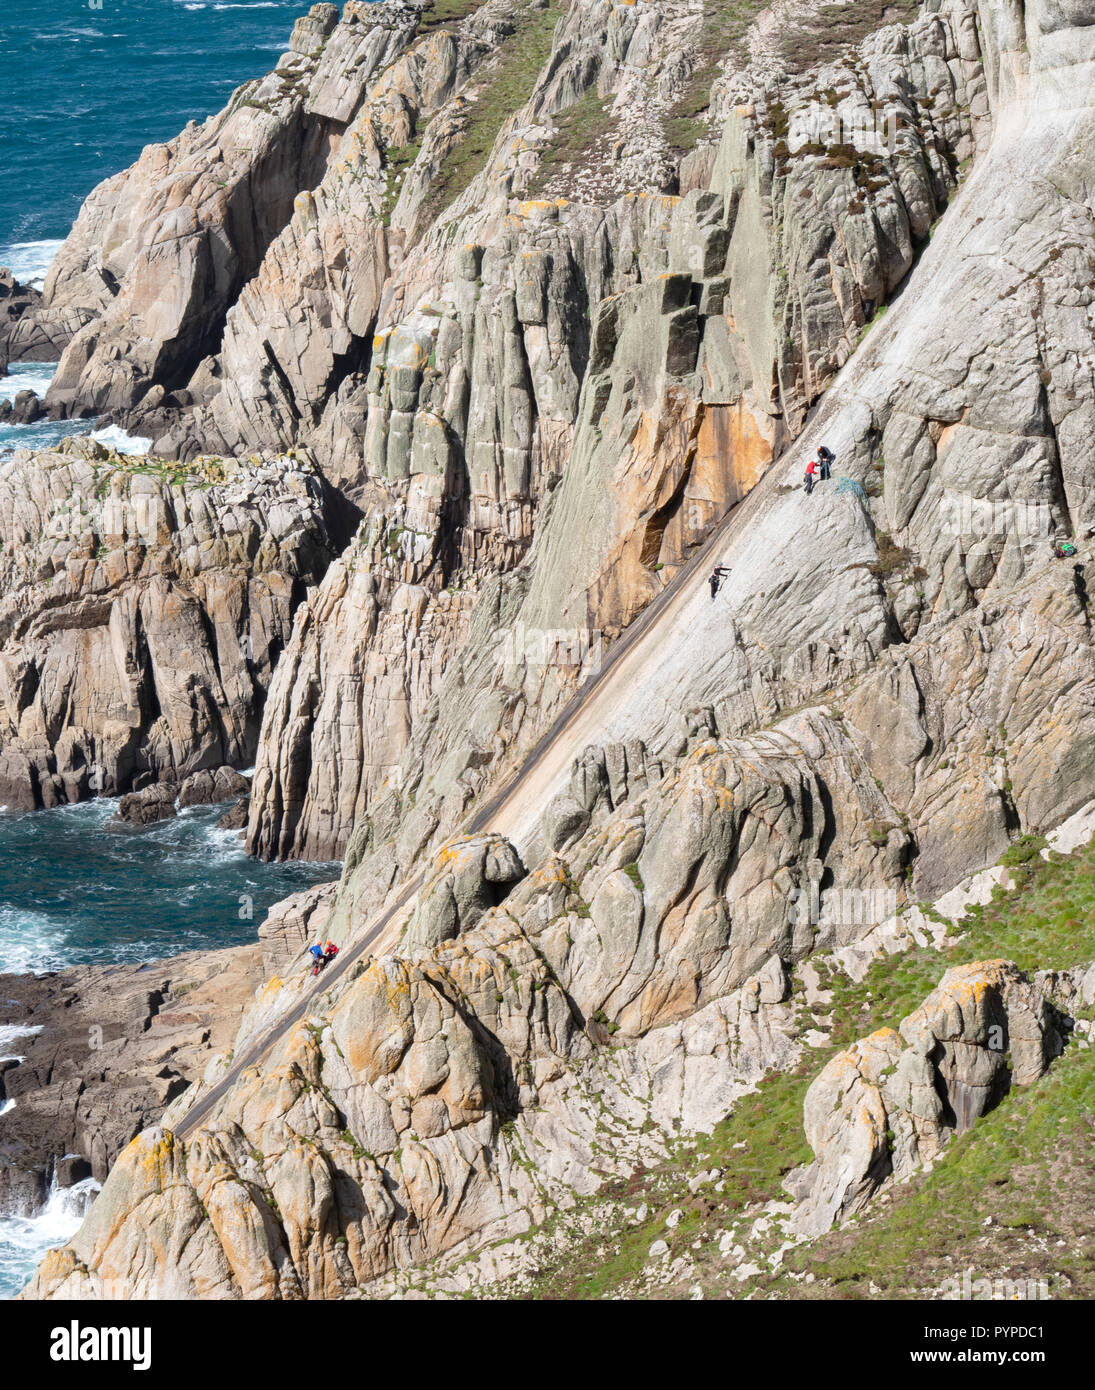 Climbers on the sheer face of The Devil's Slide the longest single granite slab climb in Europe - Lundy Island off Devon UK Stock Photo